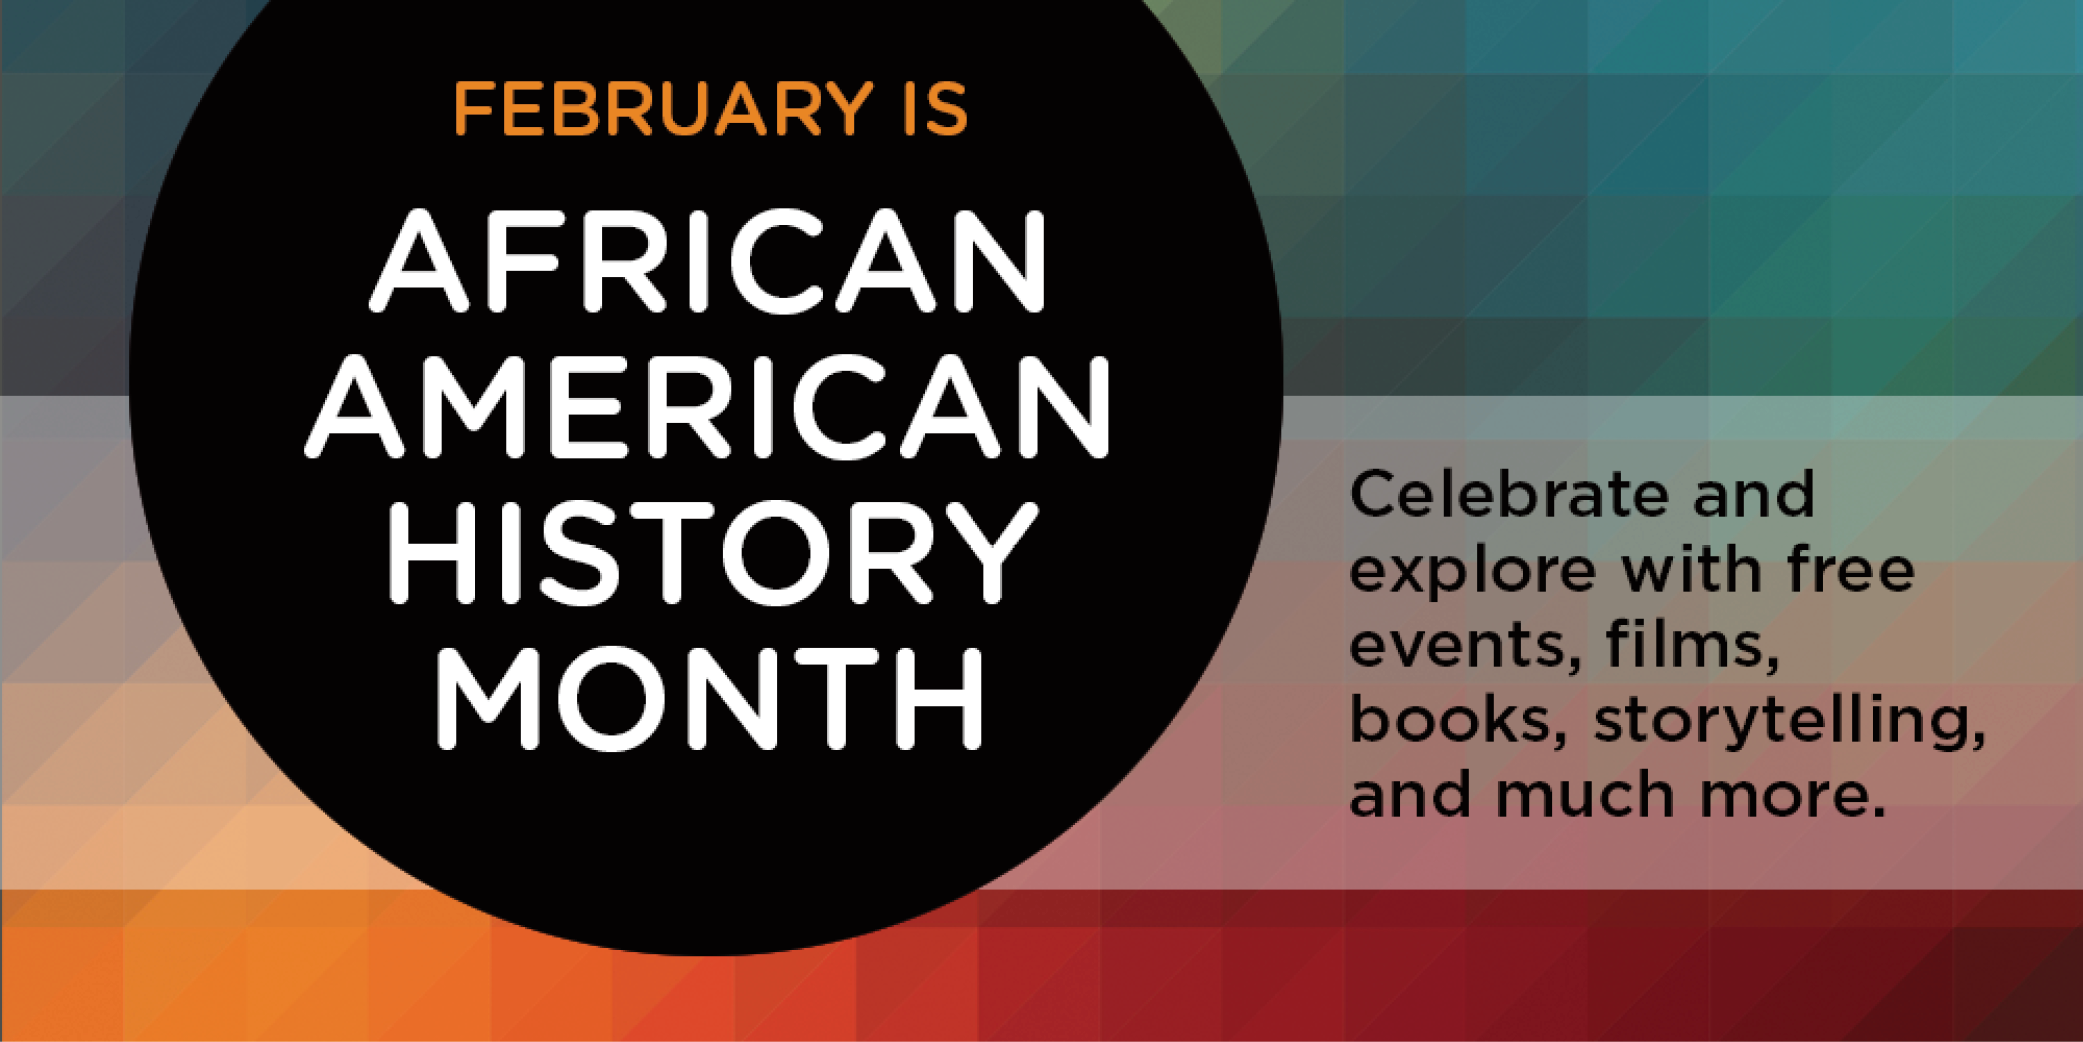 Celebrate and explore African American History Month at the Library with free events, films, books, storytelling and much more.